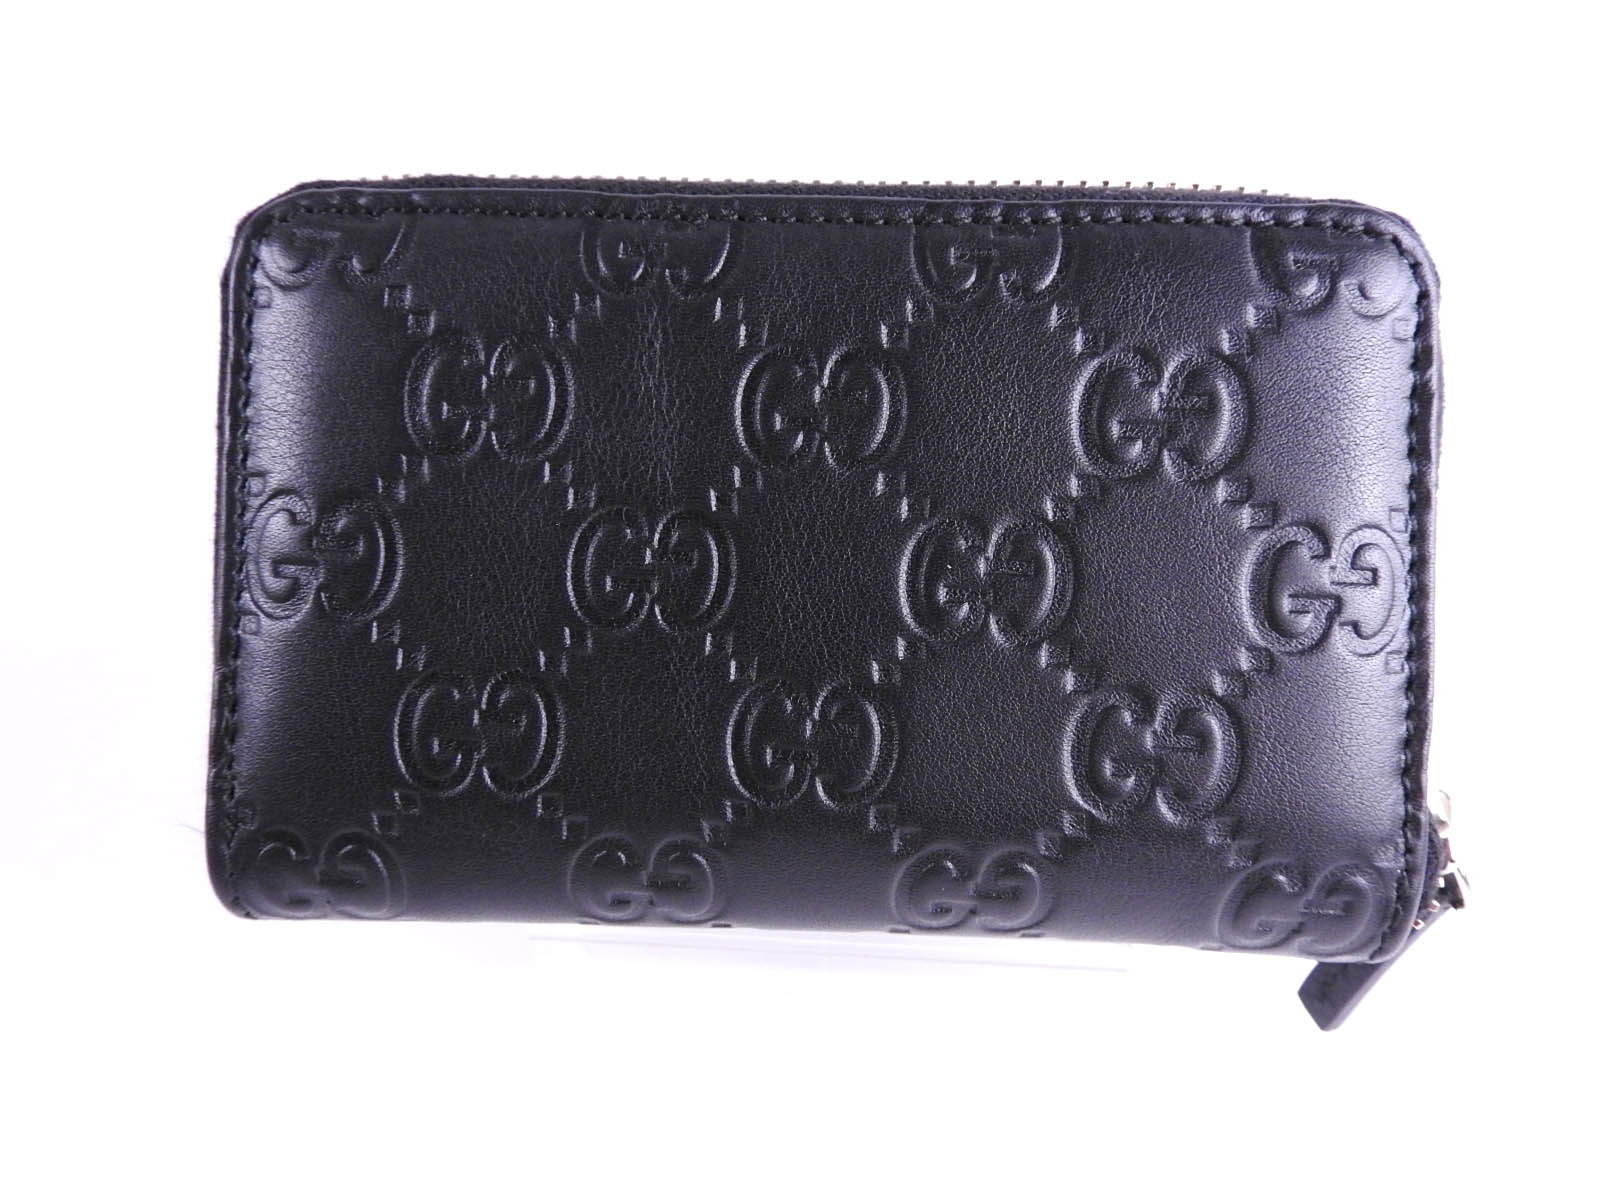 GUCCI Micro Guccissima Business Card Case Coin Purse Leather Black ...